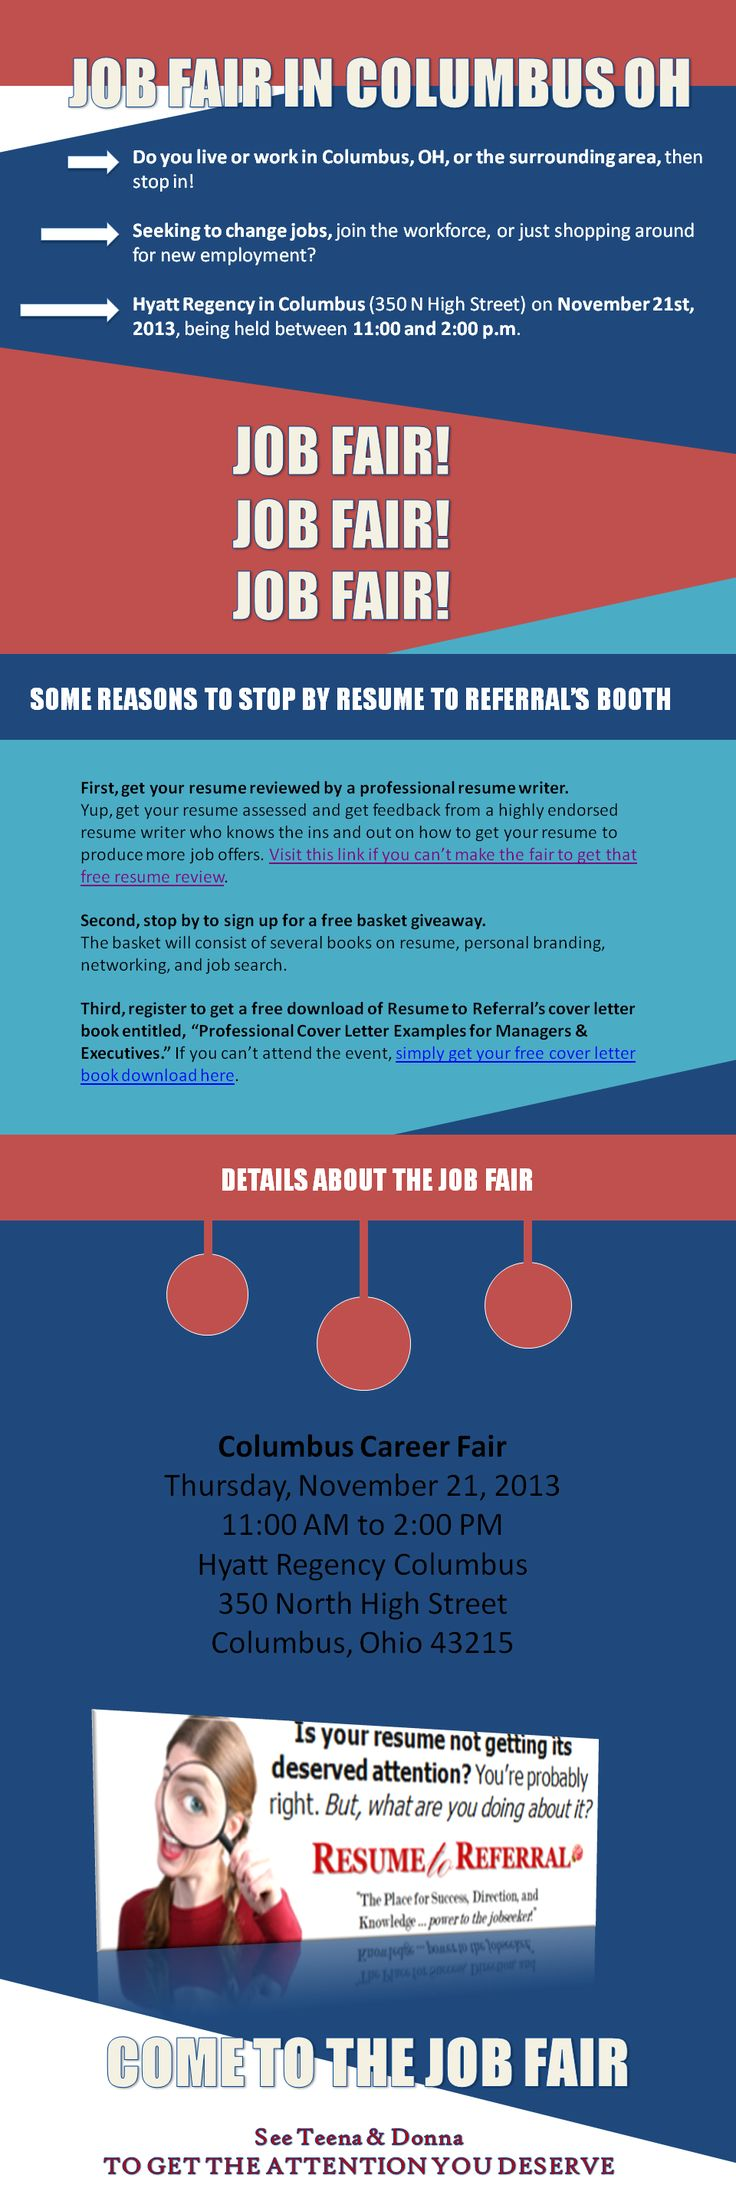 Resume Service Will Be @ Upcoming Job Fair In Columbus, OH